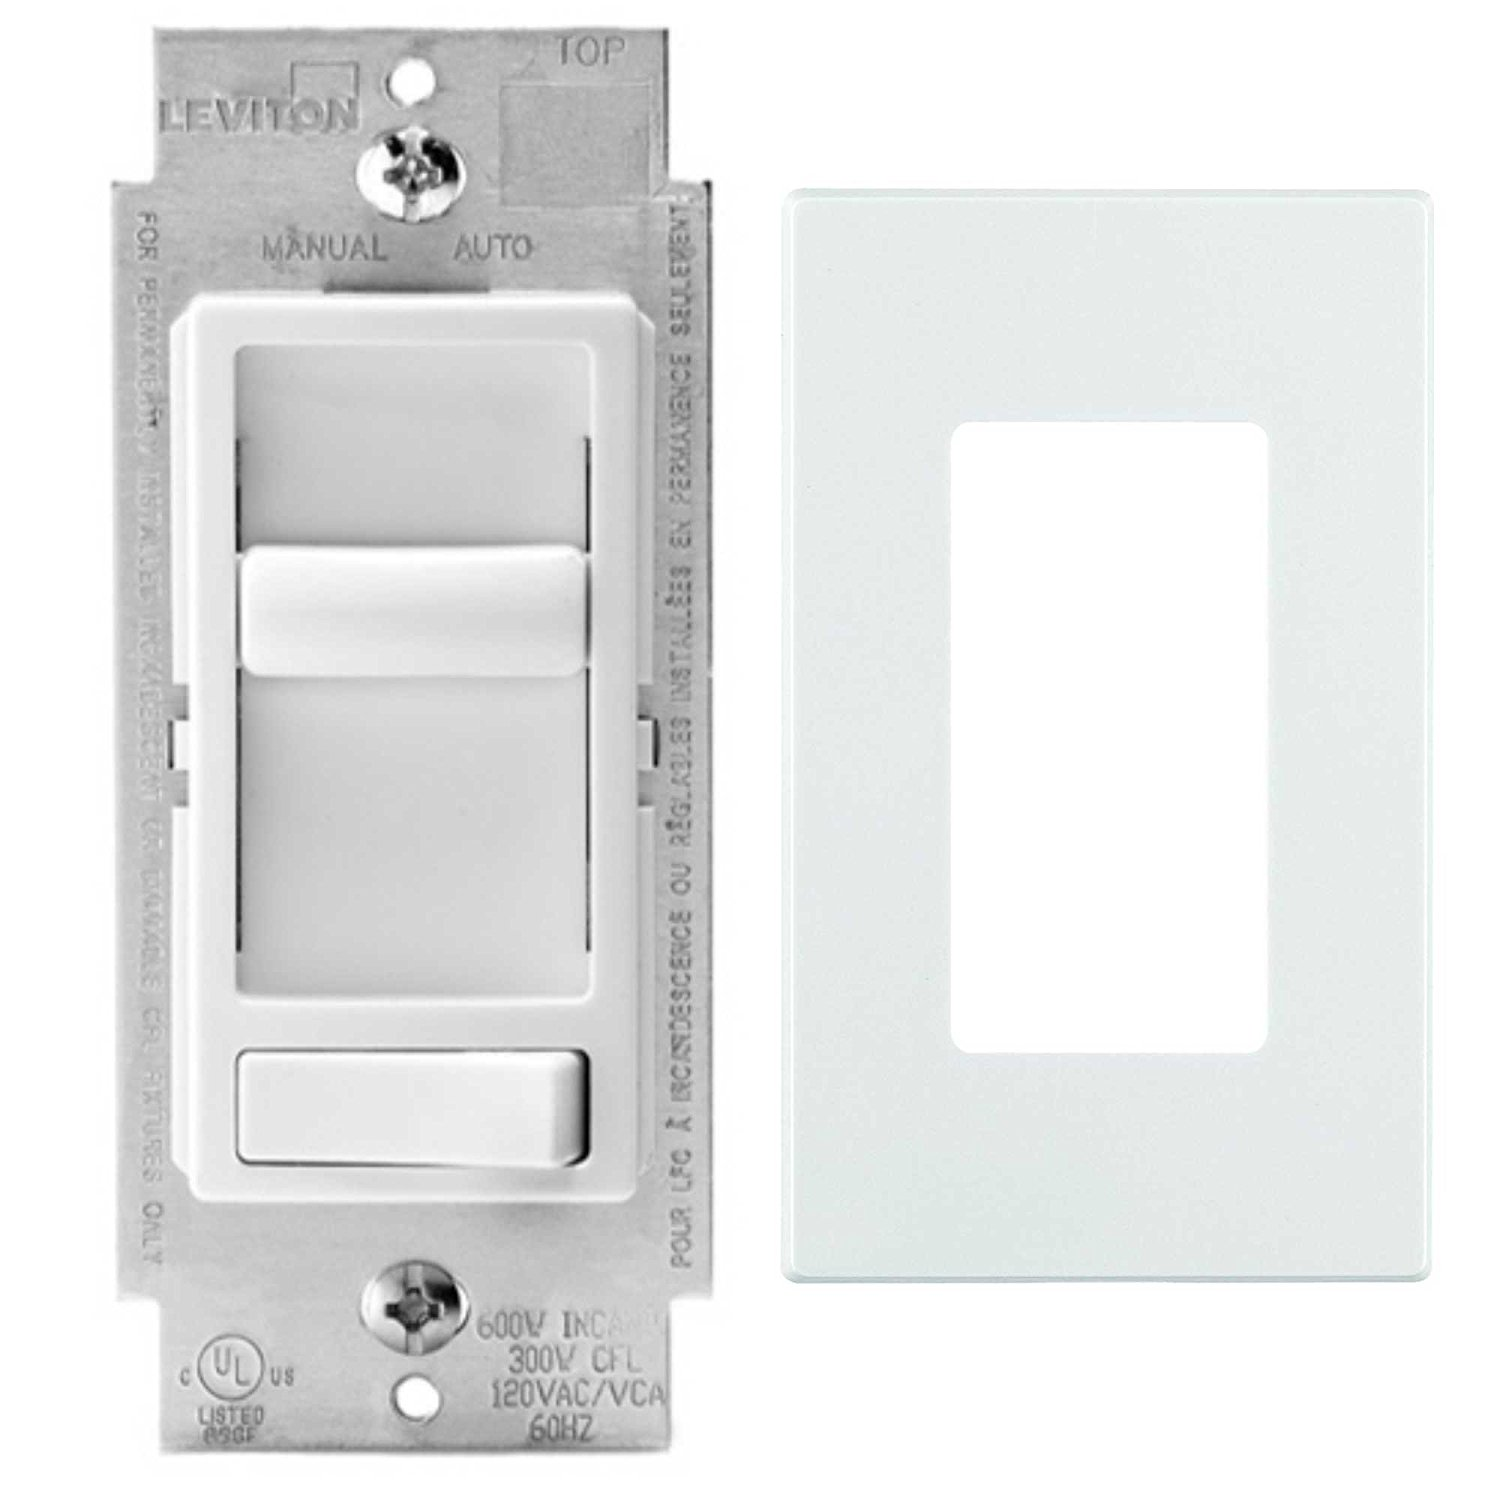 Leviton 06674-P0W SureSlide 150-Watt LED & CFL/600-Watt Incandescent Dimmer With Snap On Wall Plate, White